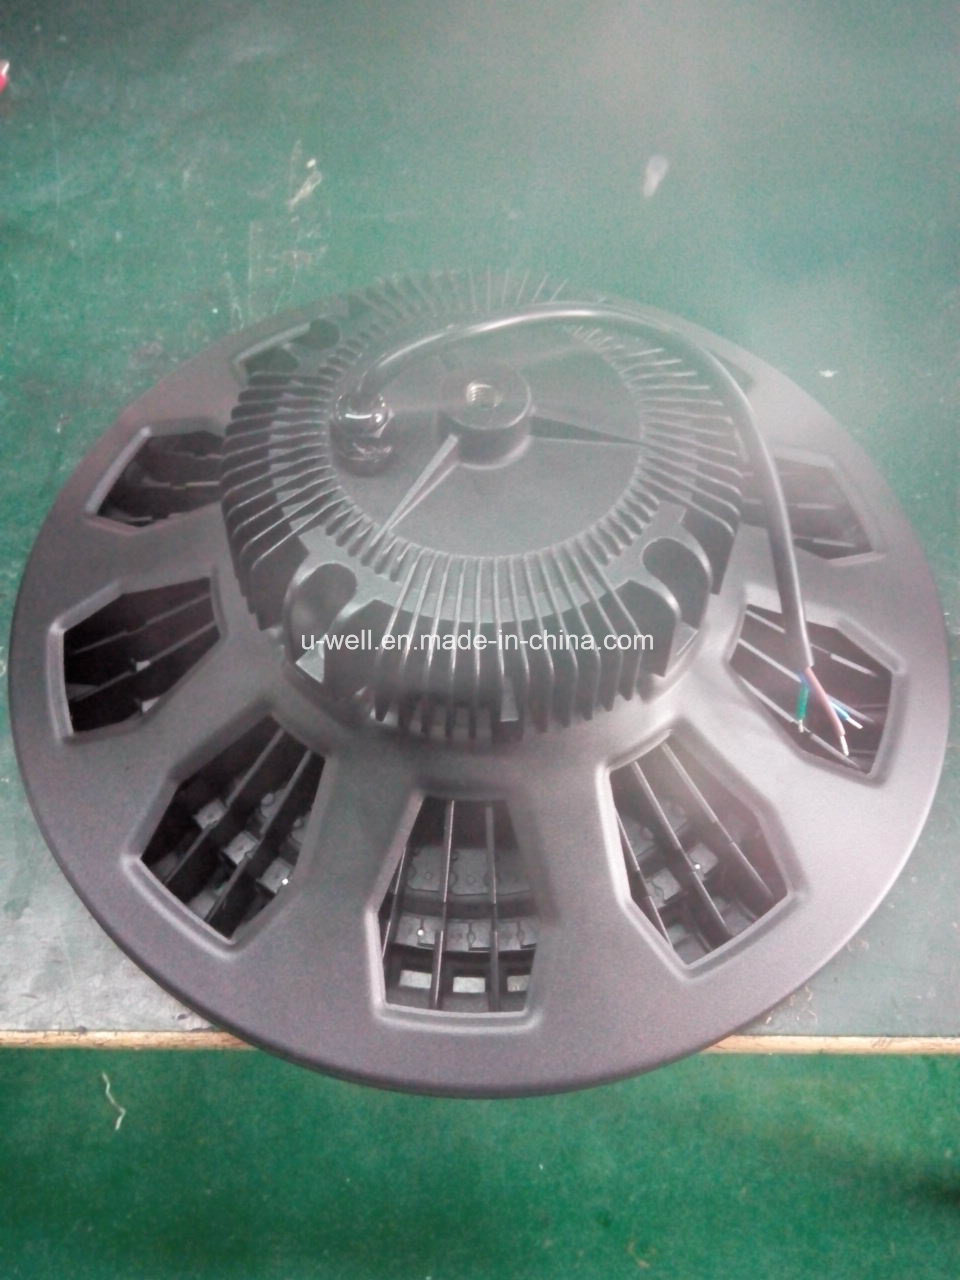 High Power 100W UFO Industria 160W UFO Design Highbay for Shopping Mall, Exhibition Hall, Parking Lot